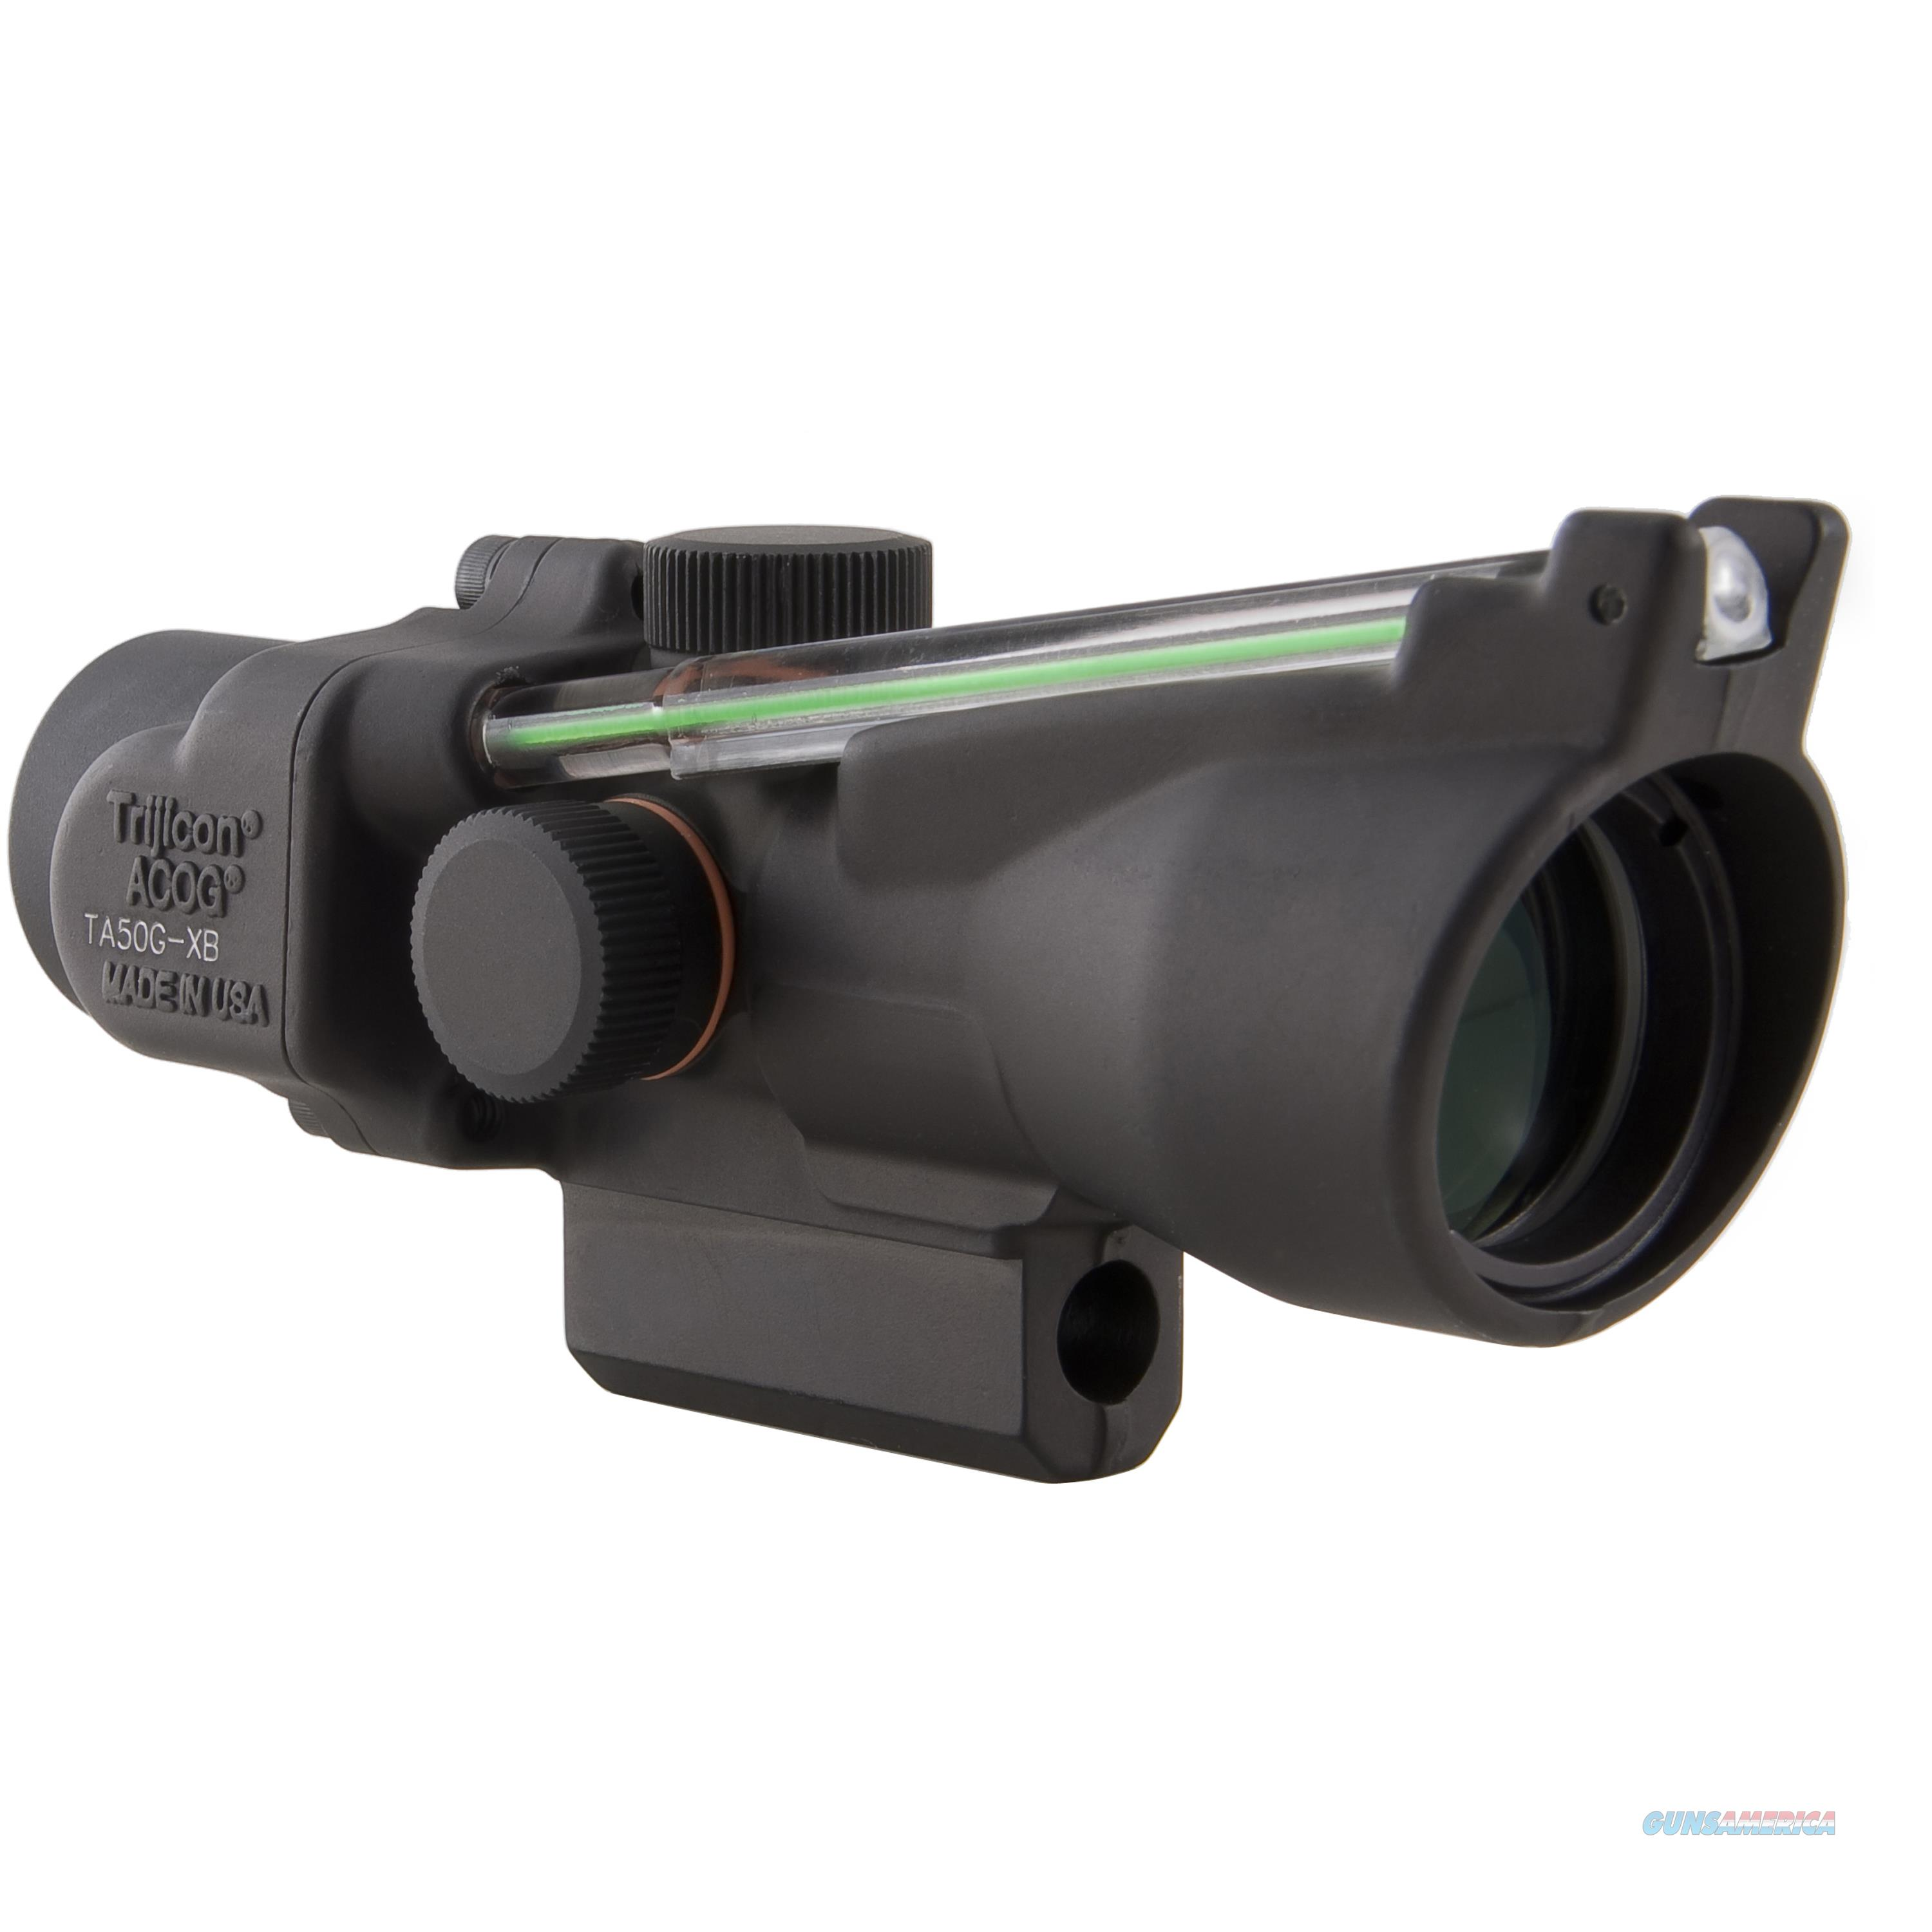 Trijicon Acog 3X24mm Xb Compact Dual Illuminated Crossbow Scope TA50-C-400145  Non-Guns > Archery > Bows > Crossbows